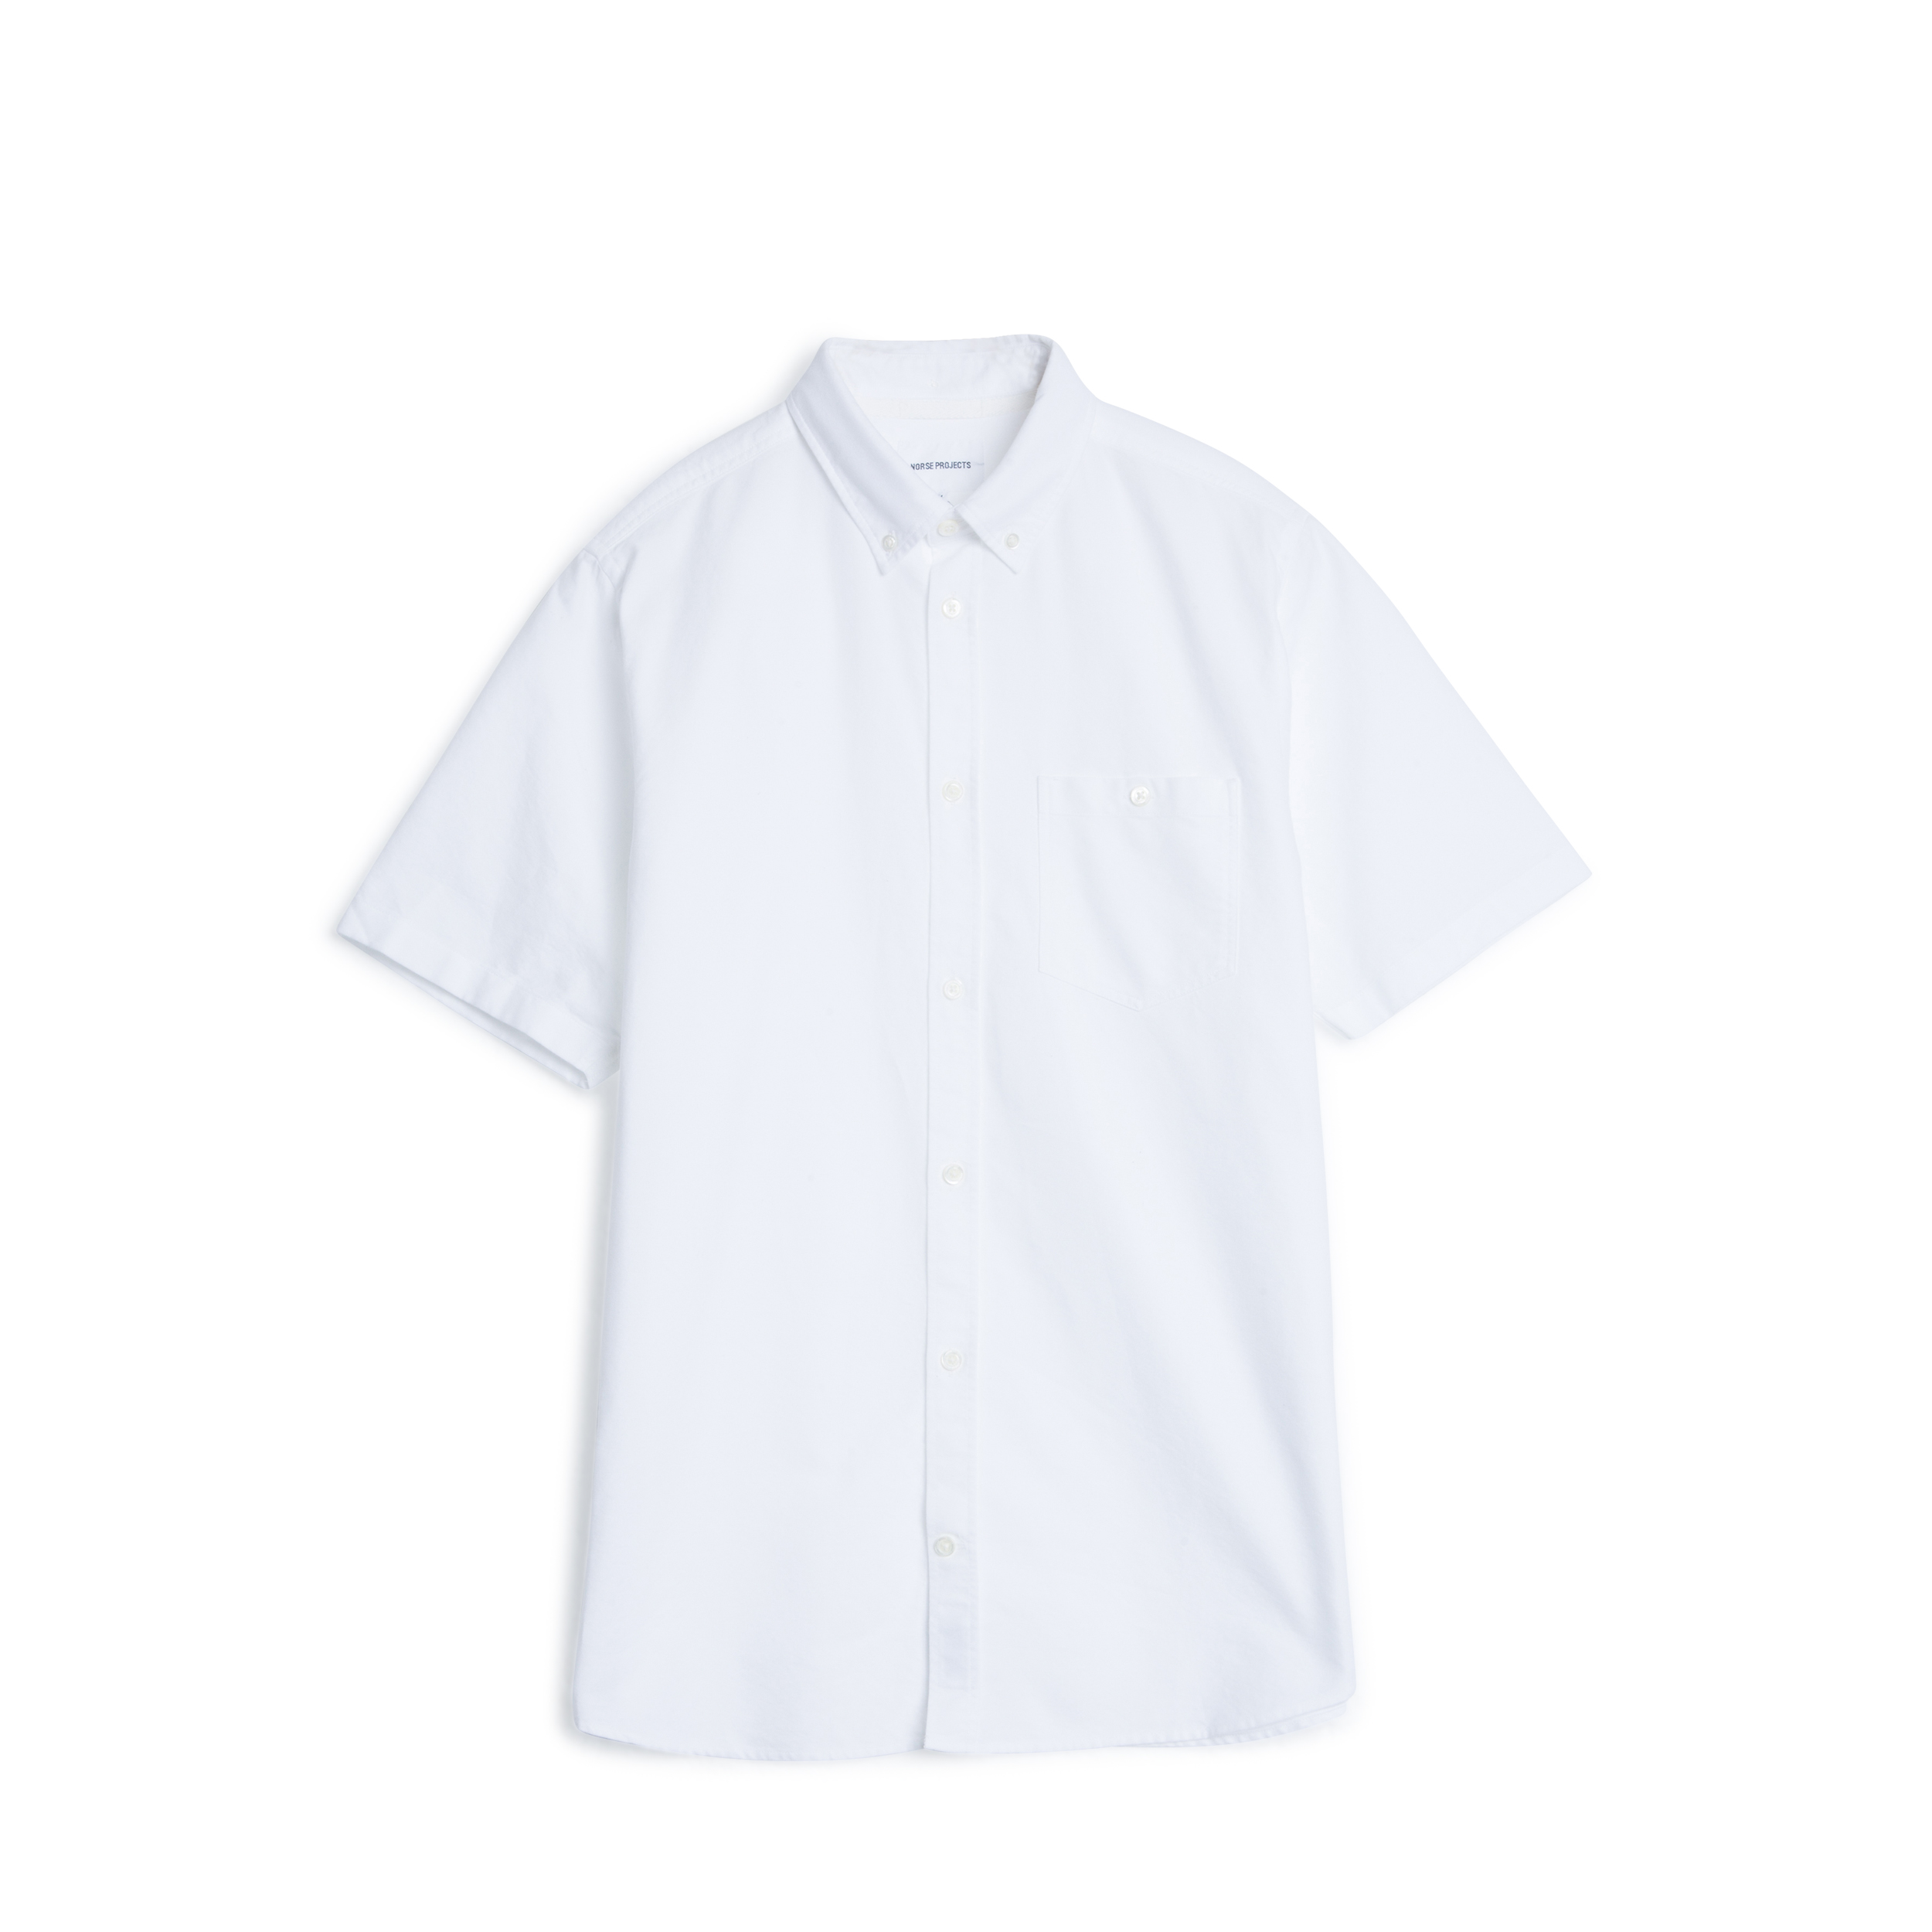 Norse Projects White 001 Anton Oxford Shirt